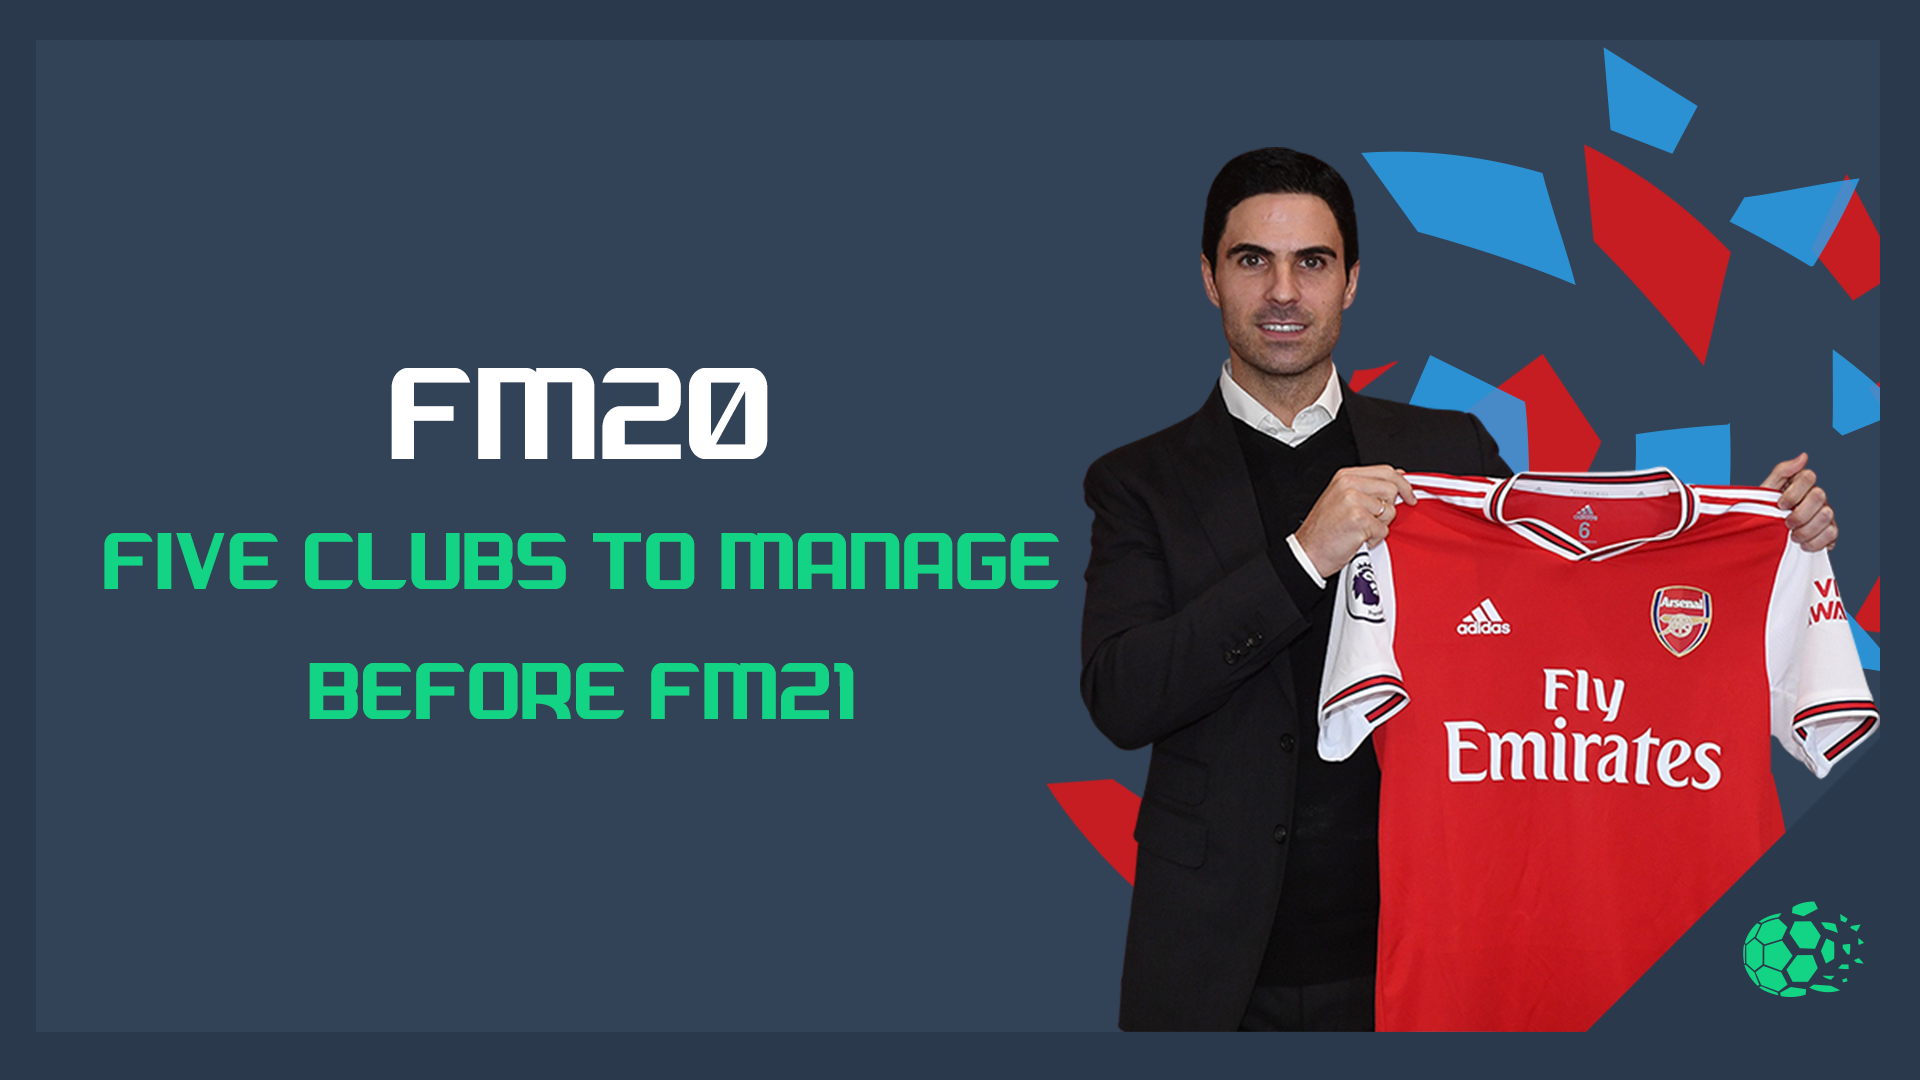 """5 Team to Manage Before FM21"" feature image"